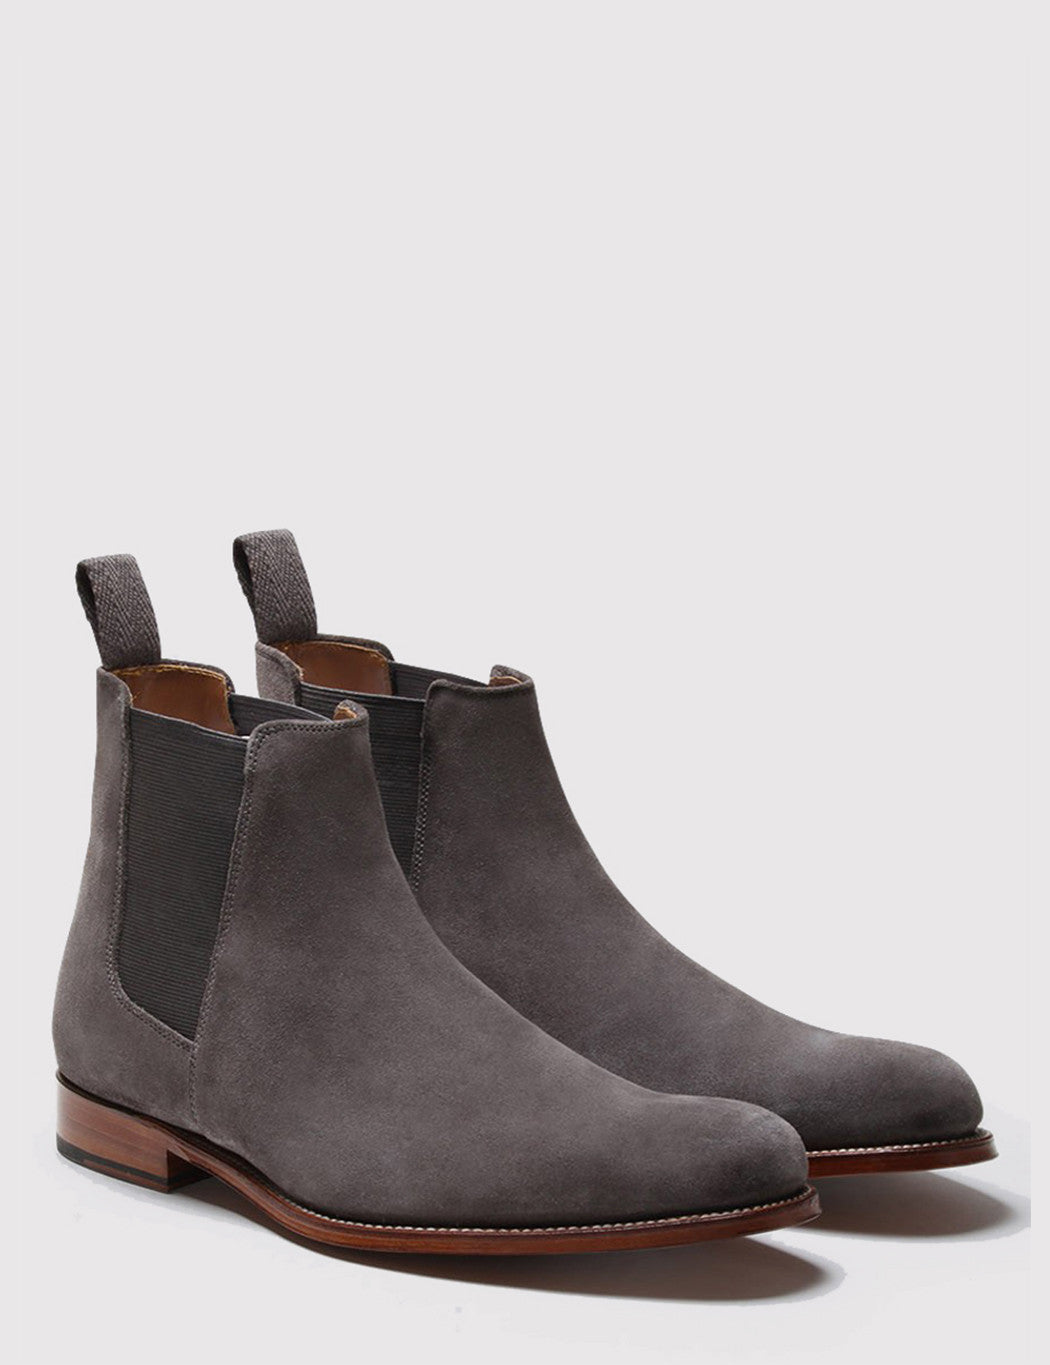 Grenson Declan Suede Chelsea Boot - Charcoal